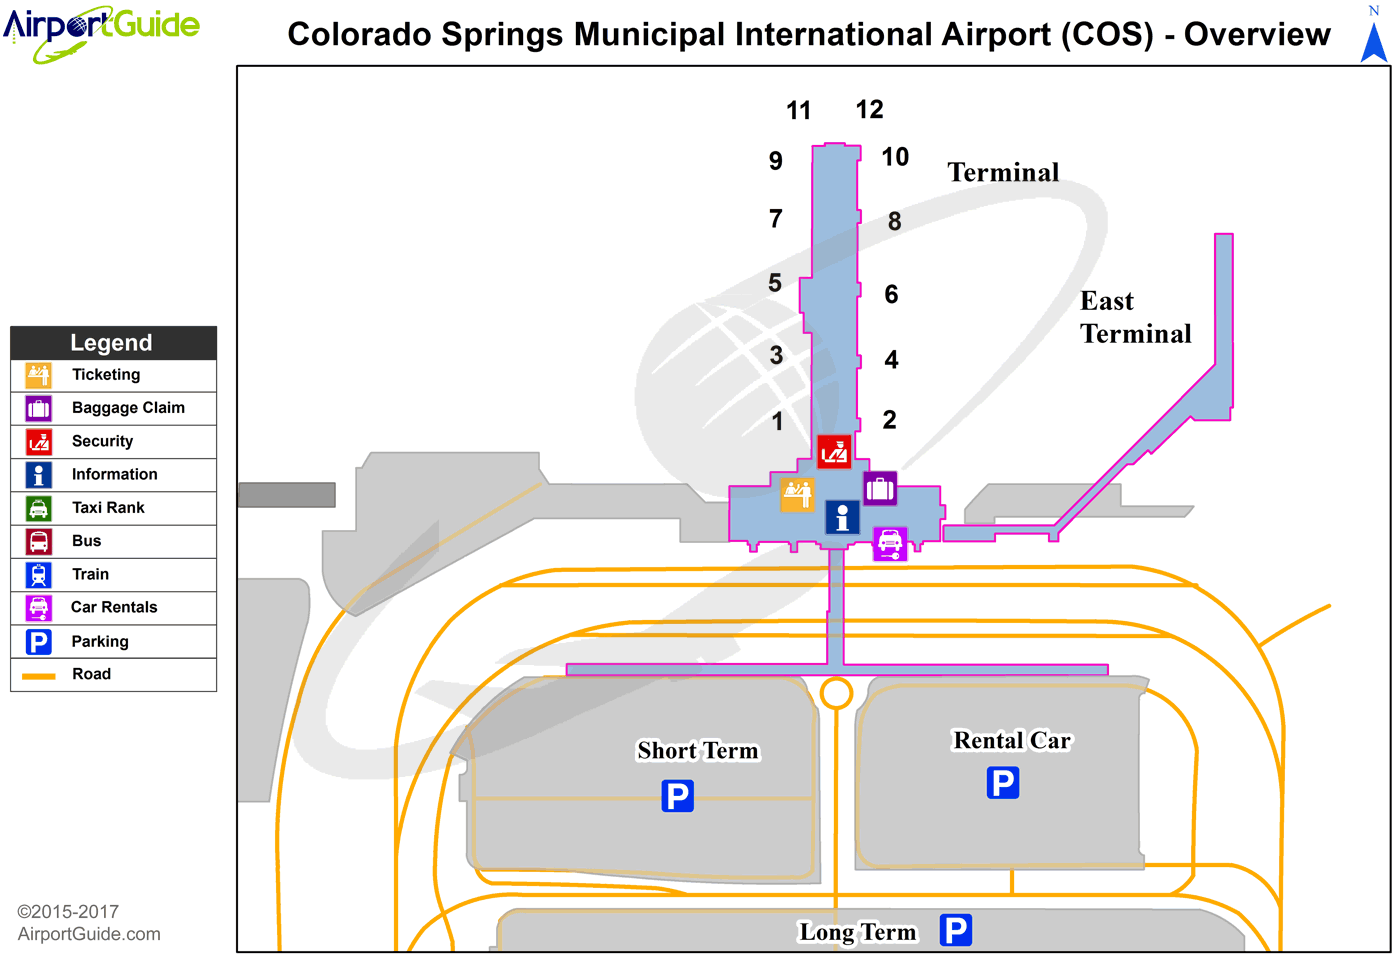 colorado springs hotels map with City Of Colorado Springs Municipal Cos Airport Terminal Map on Colorado Springs Map likewise LocationPhotoDirectLink G1916178 D5779893 I89658505 IHG Army Hotels on Fort Carson Colorado Inn Fort Carson Colorado additionally LocationPhotos G31306 Peach Springs Hualapai Reservation Arizona as well Loop Hike Map as well Places To Stay.